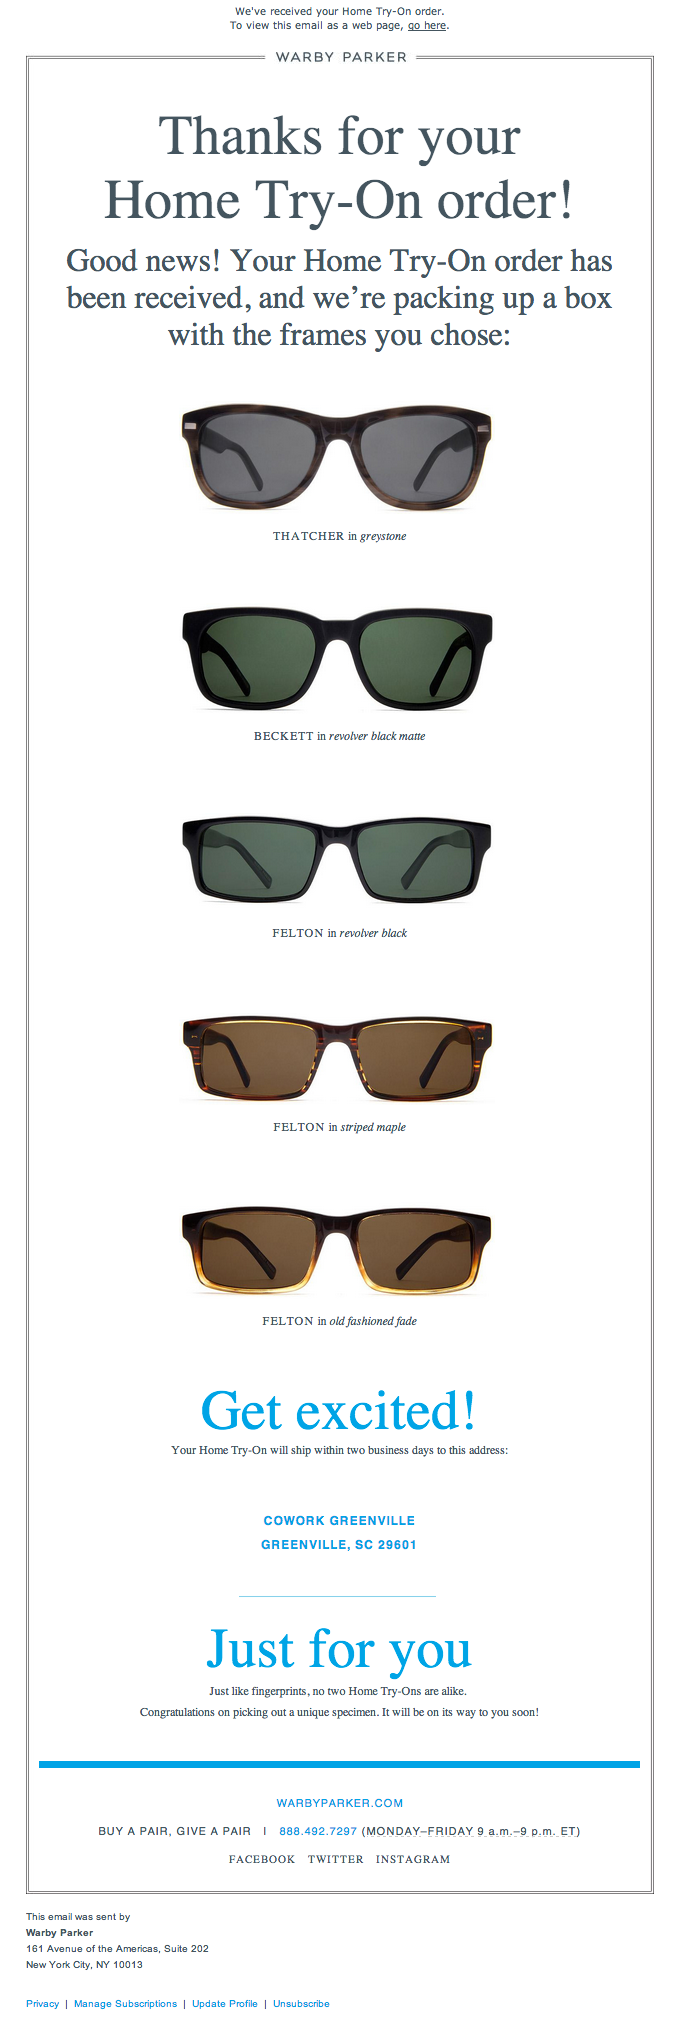 An order confirmation email from Warby Parker.